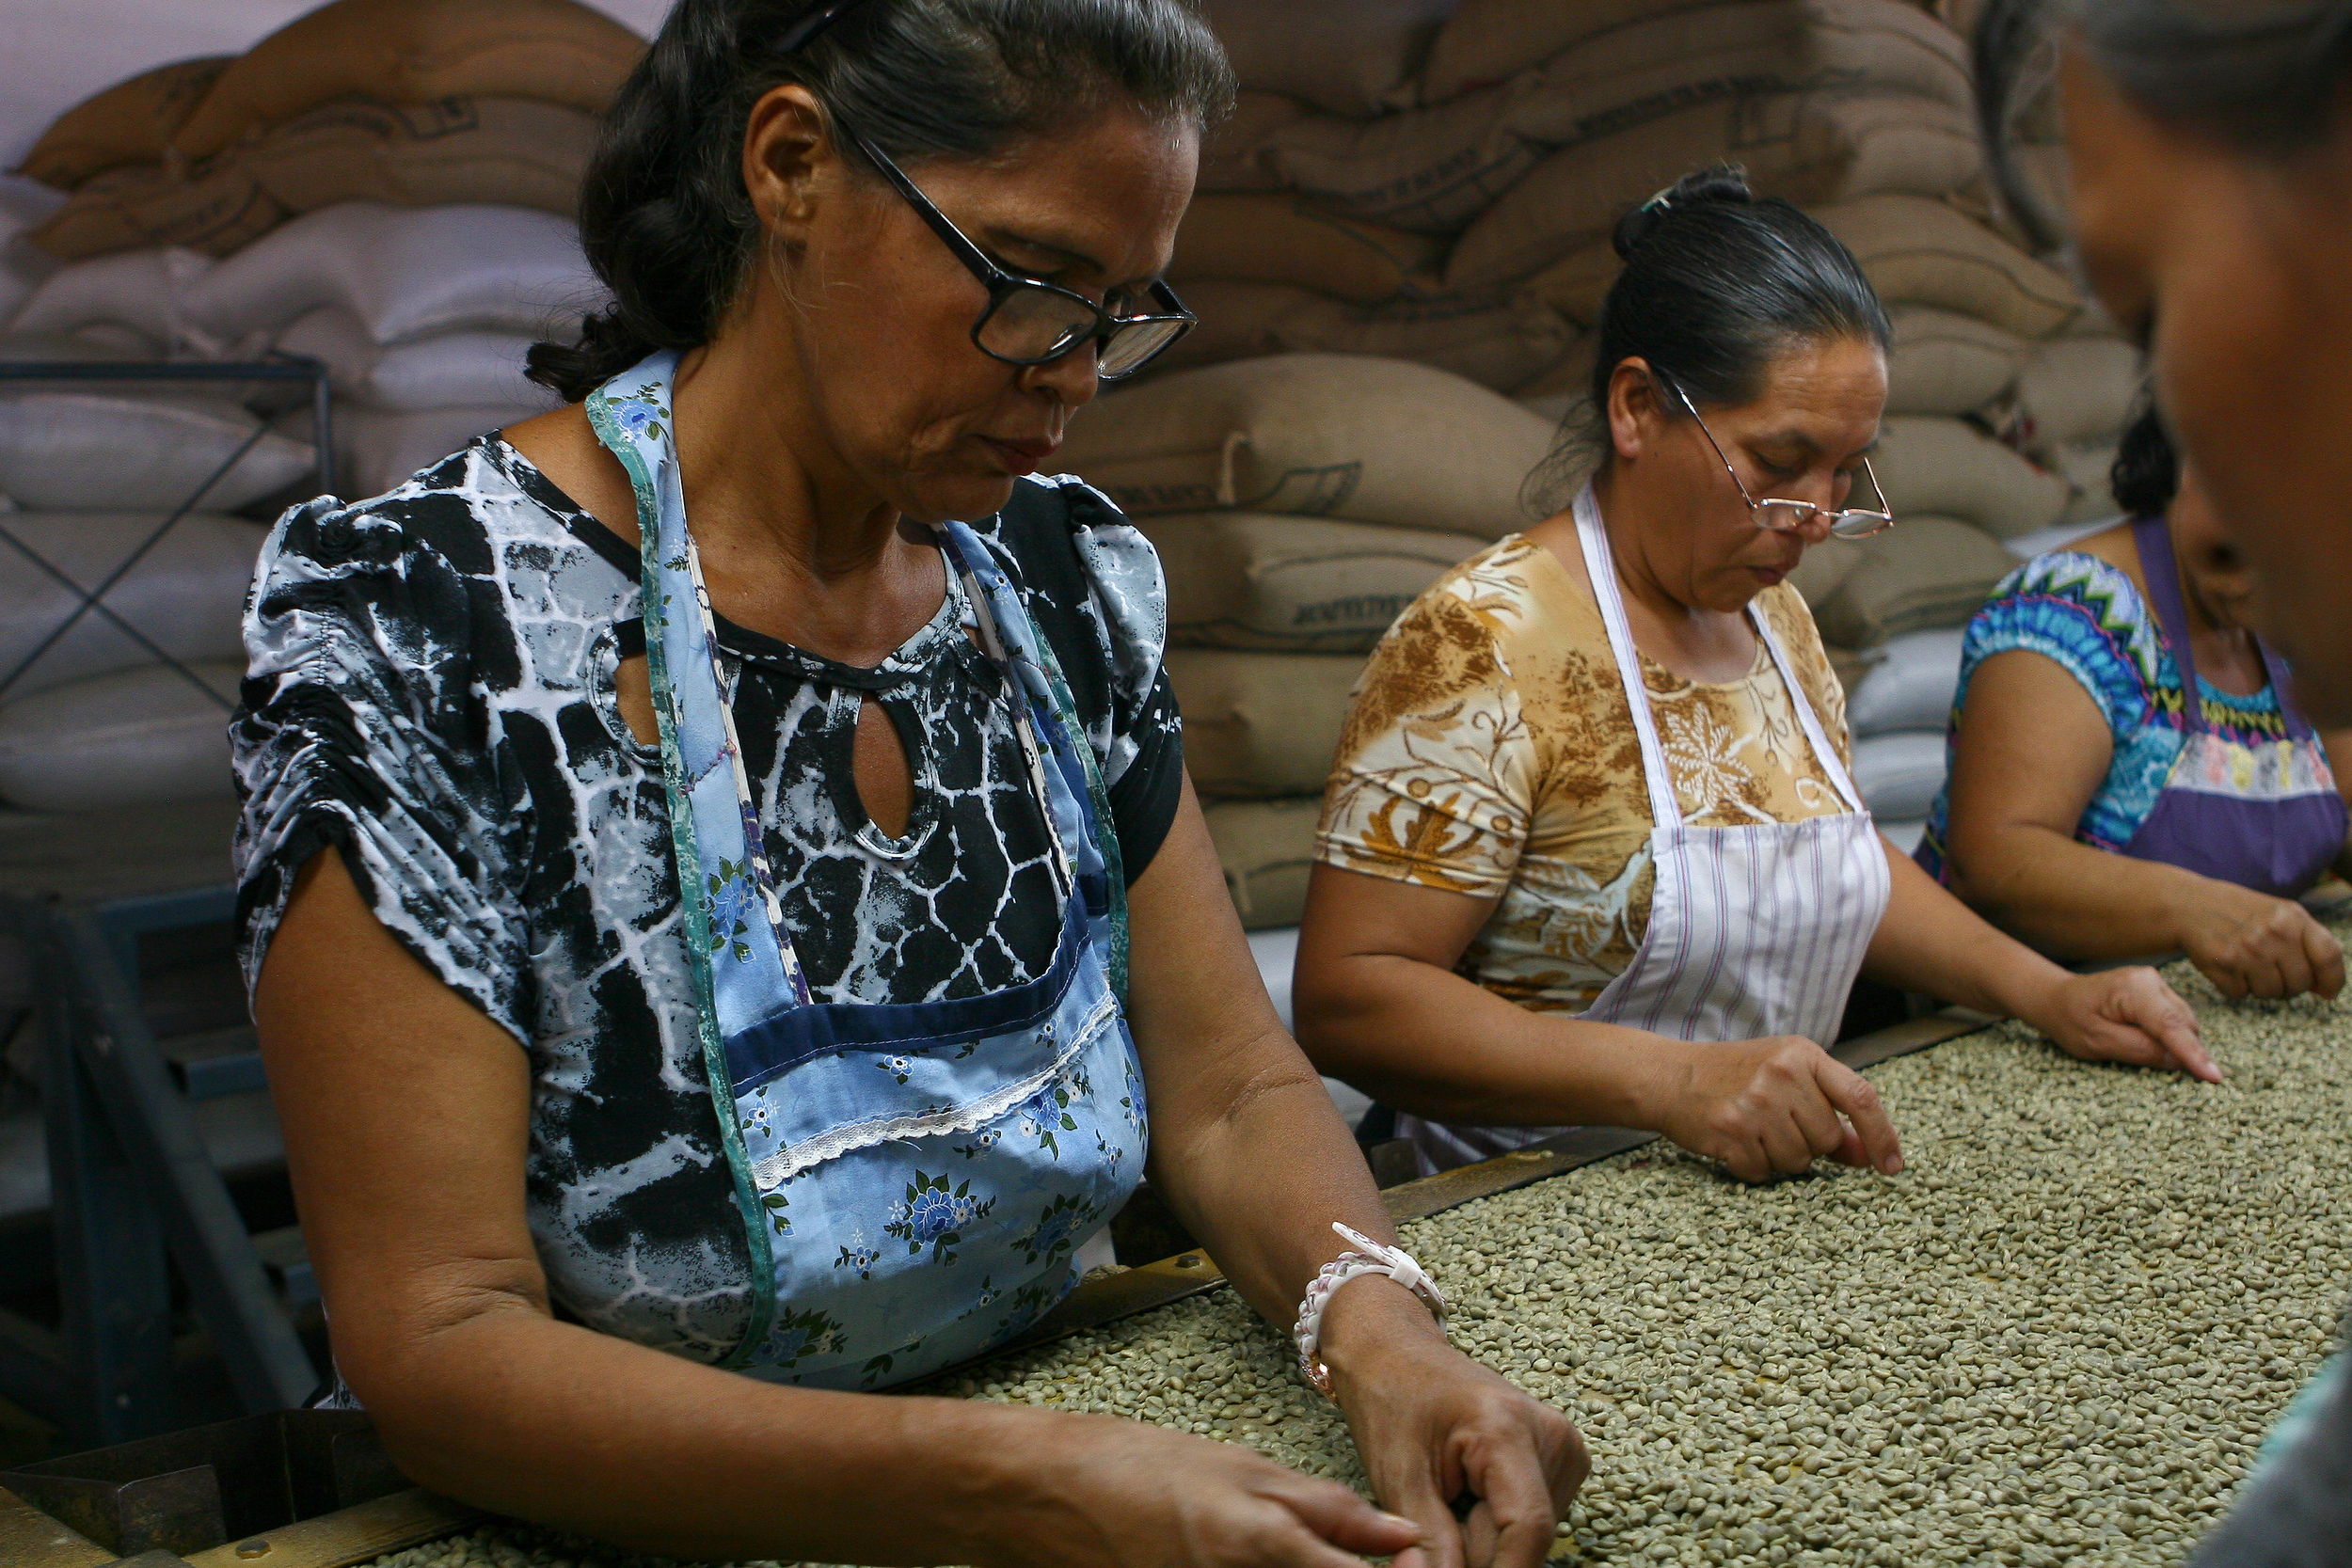 Once the coffee beans are ready for export, they go through a hulling machine that removes the coffees outermost parchment layer. the beans then go through multiple screenings in which they are separated by size, density and color. Defective beans are removed, and only the beans that meet desired quality standards are exported.